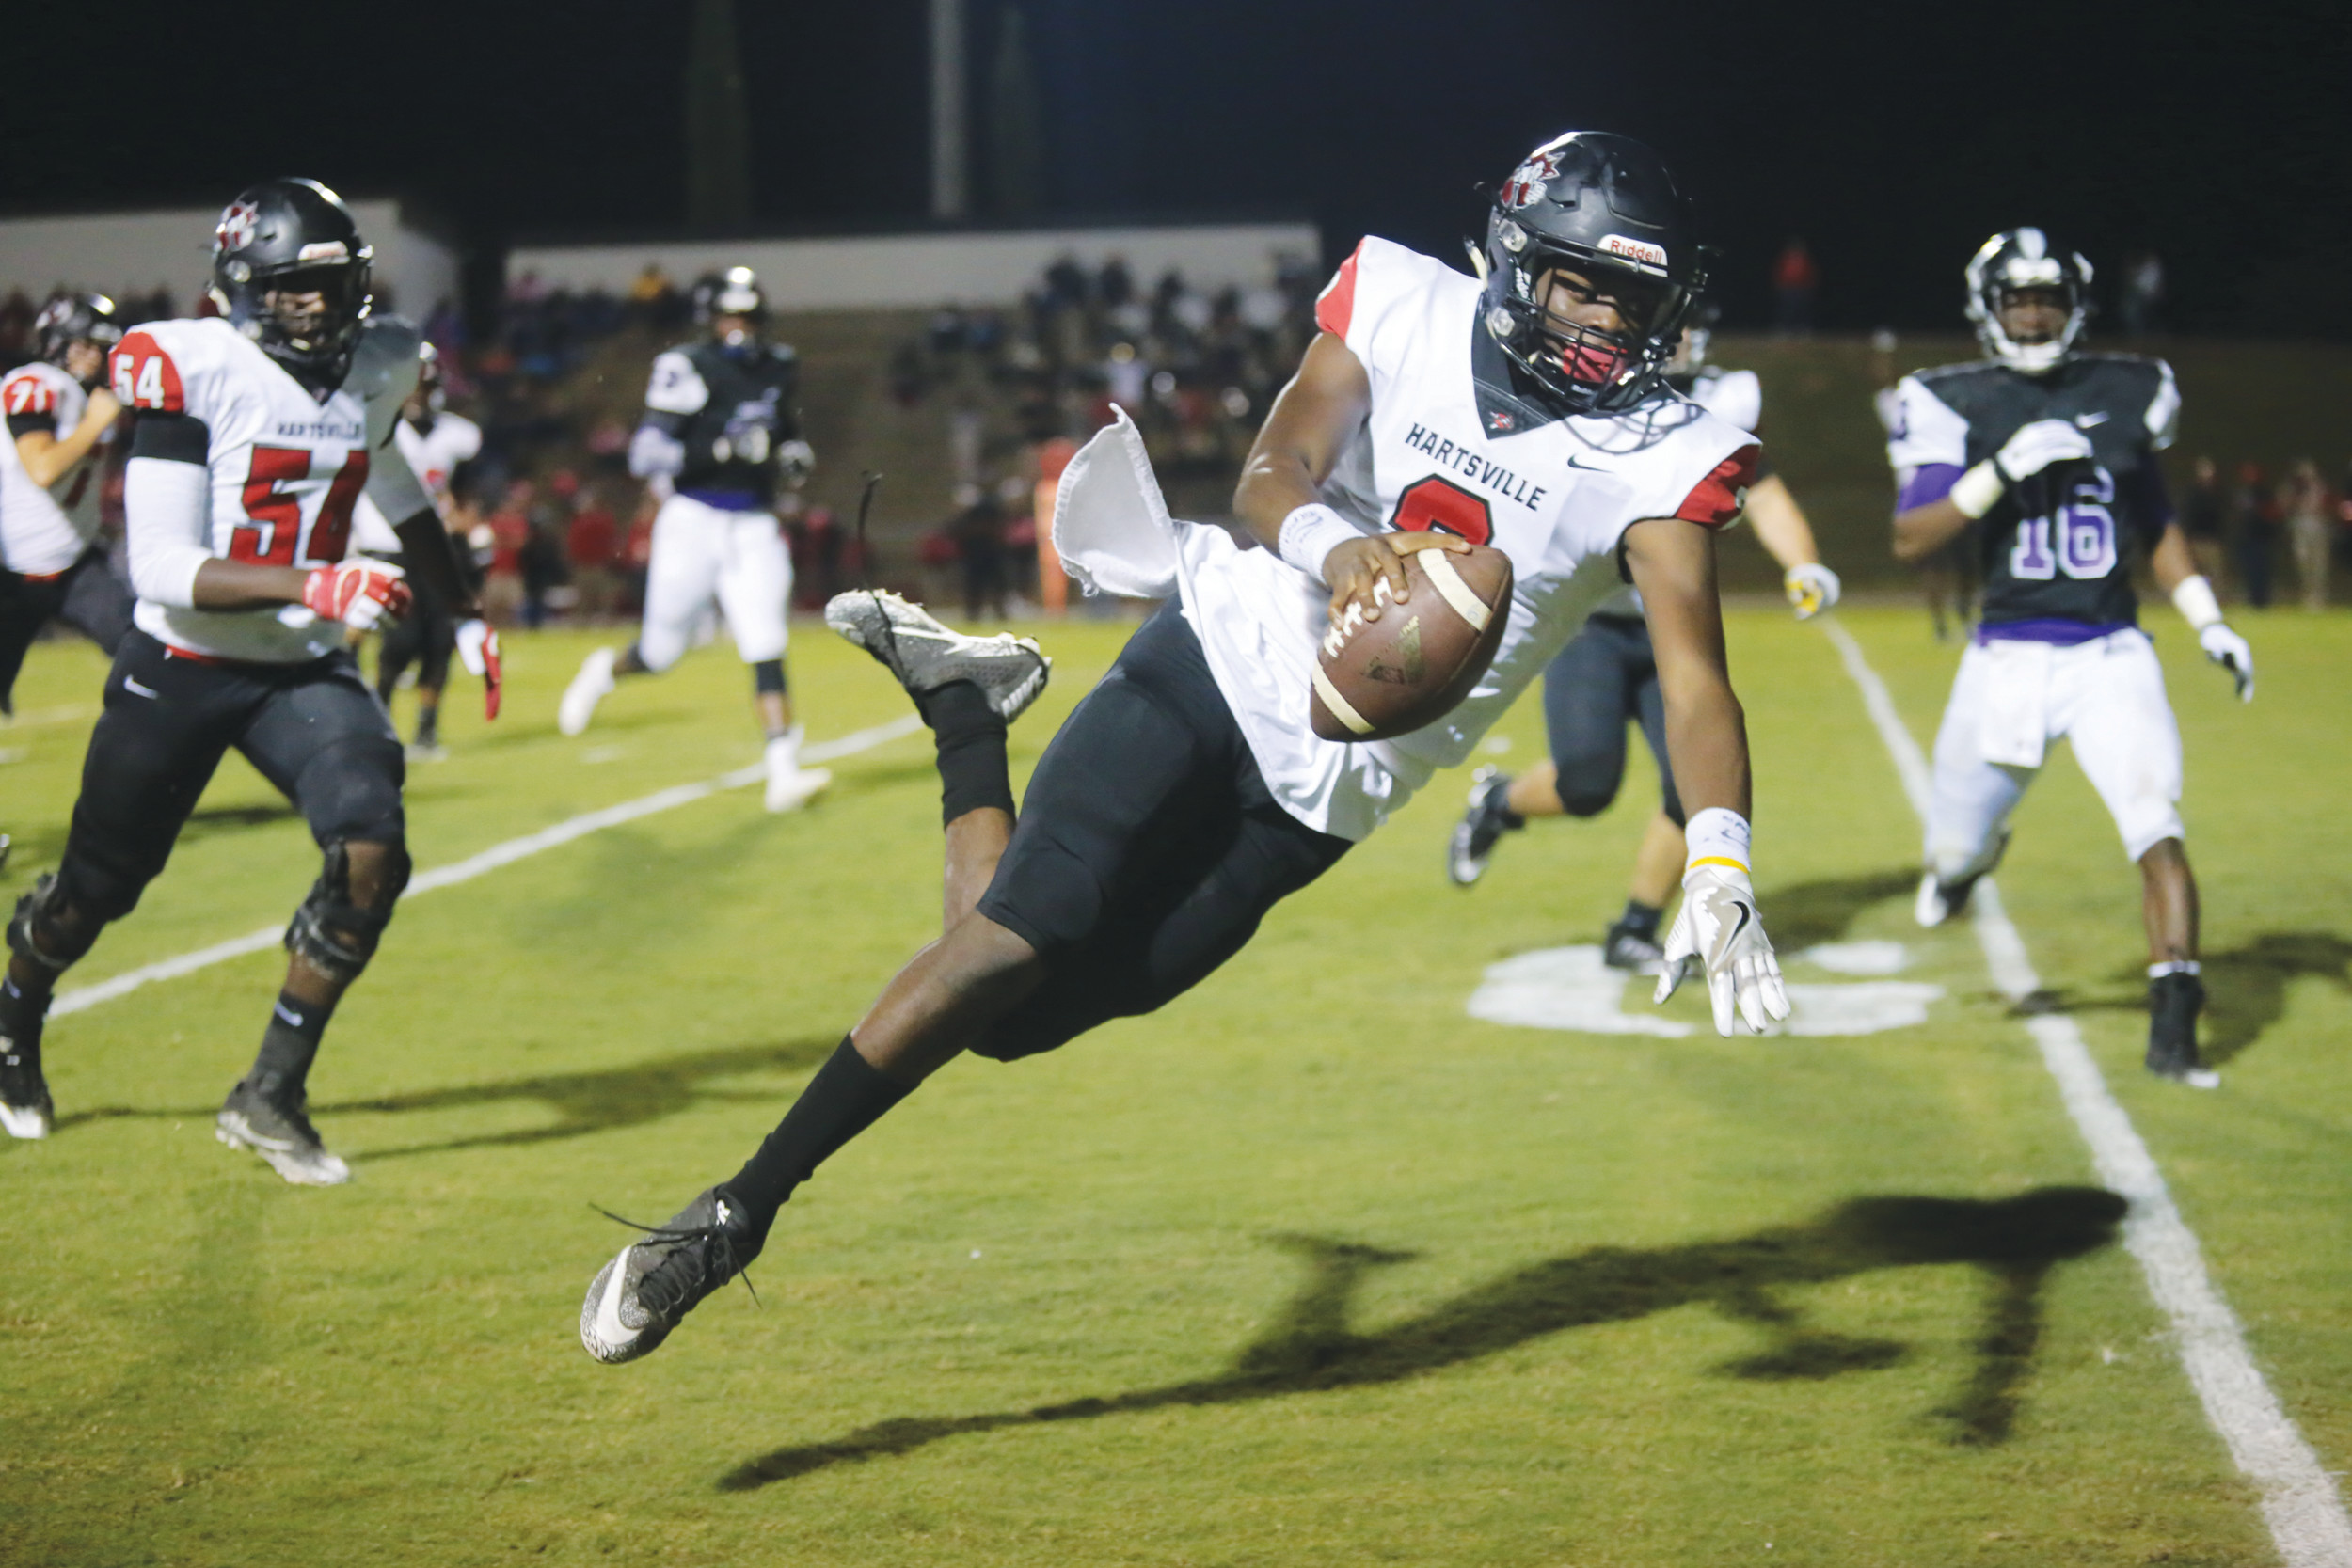 Hartsville quarterback A.J. Joyner finishes off a touchdown run in the first quarter of the Foxes' 48-0 win over Crestwood on Friday at Donald. L. Crolley Memorial Stadium.